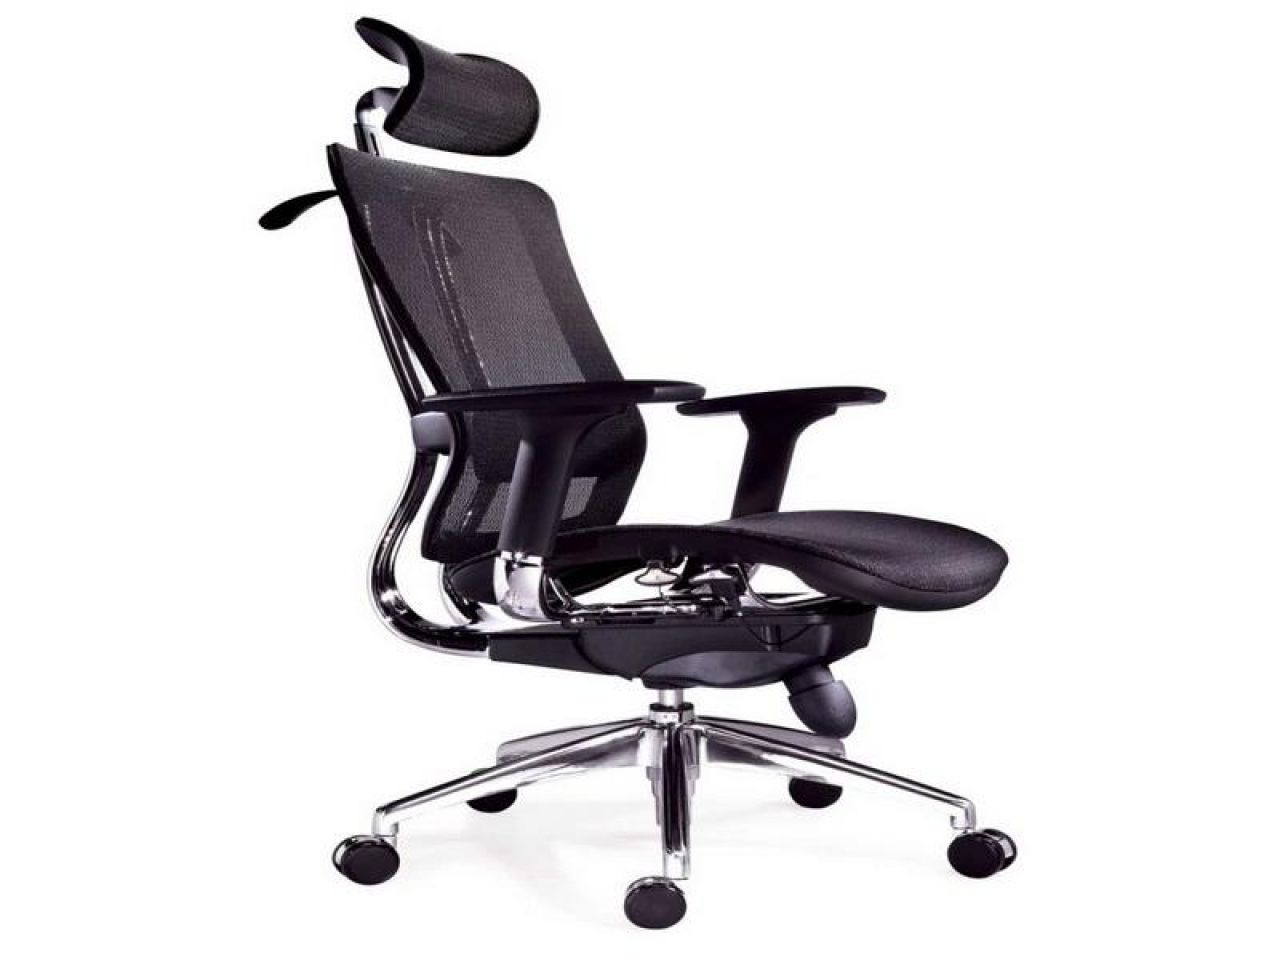 Bequemer Bürostuhl Most Comfortable Recliner Chair Stühle Best Office Chair